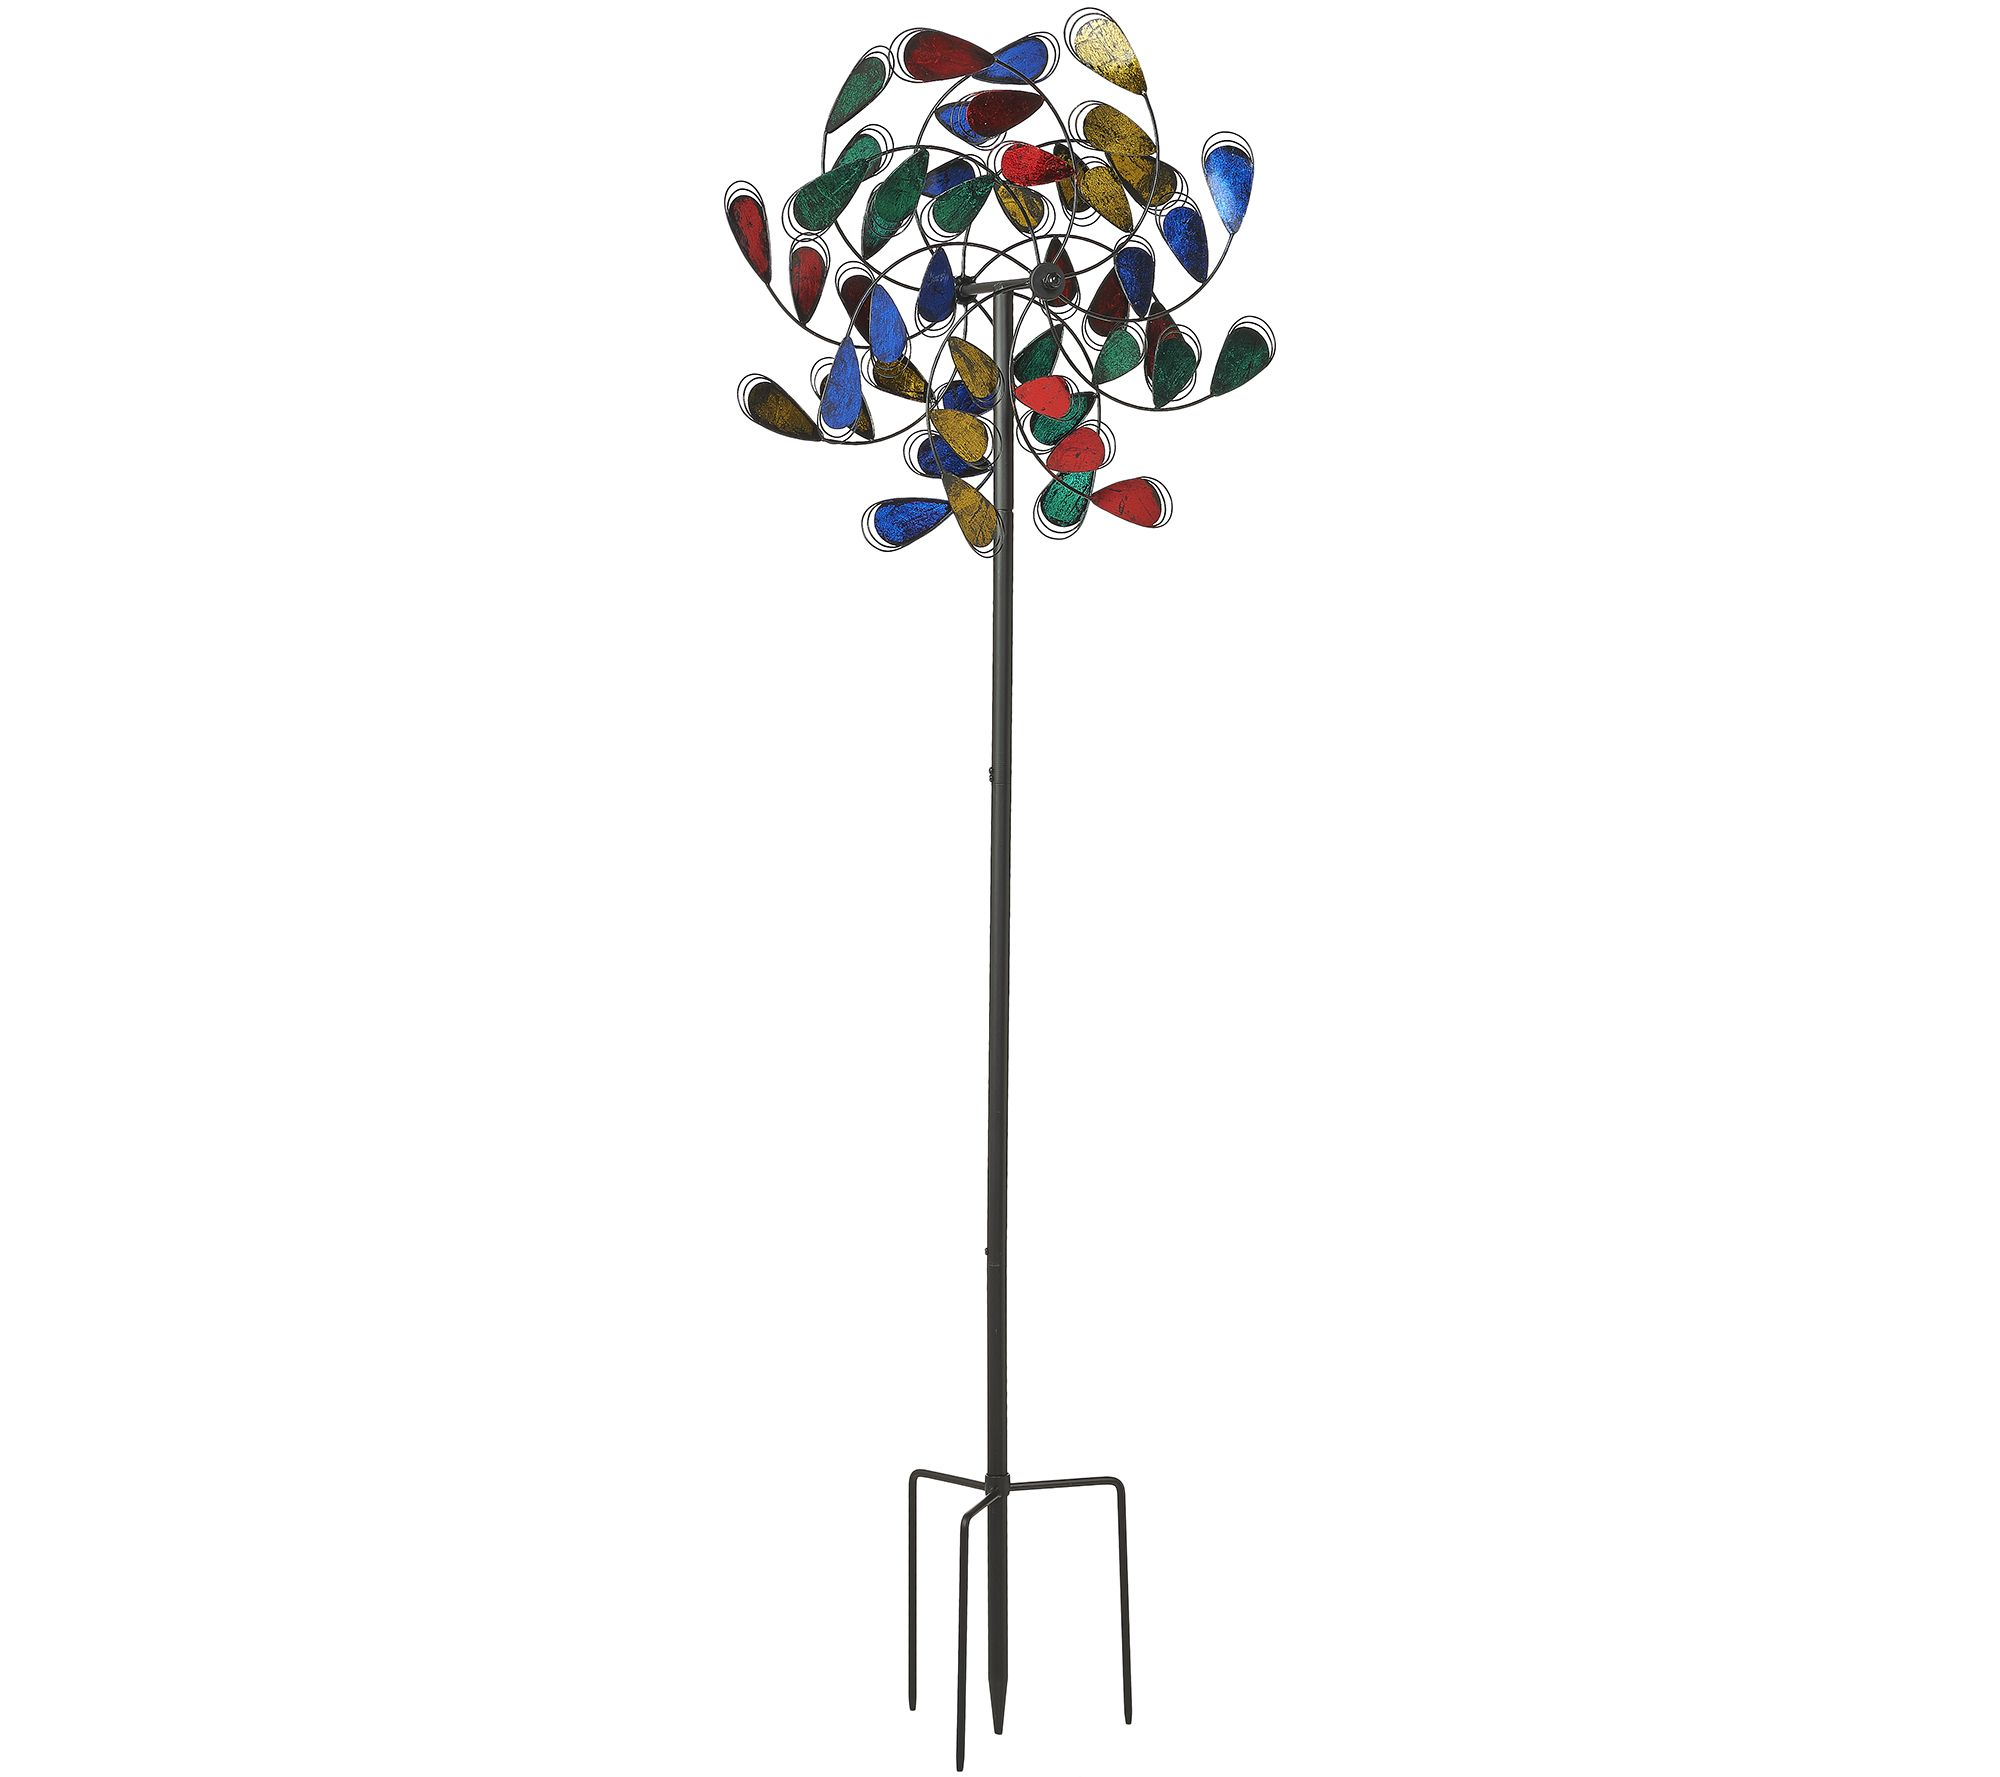 Plow hearth 6 foot feather garden spinner page 1 qvc amipublicfo Images